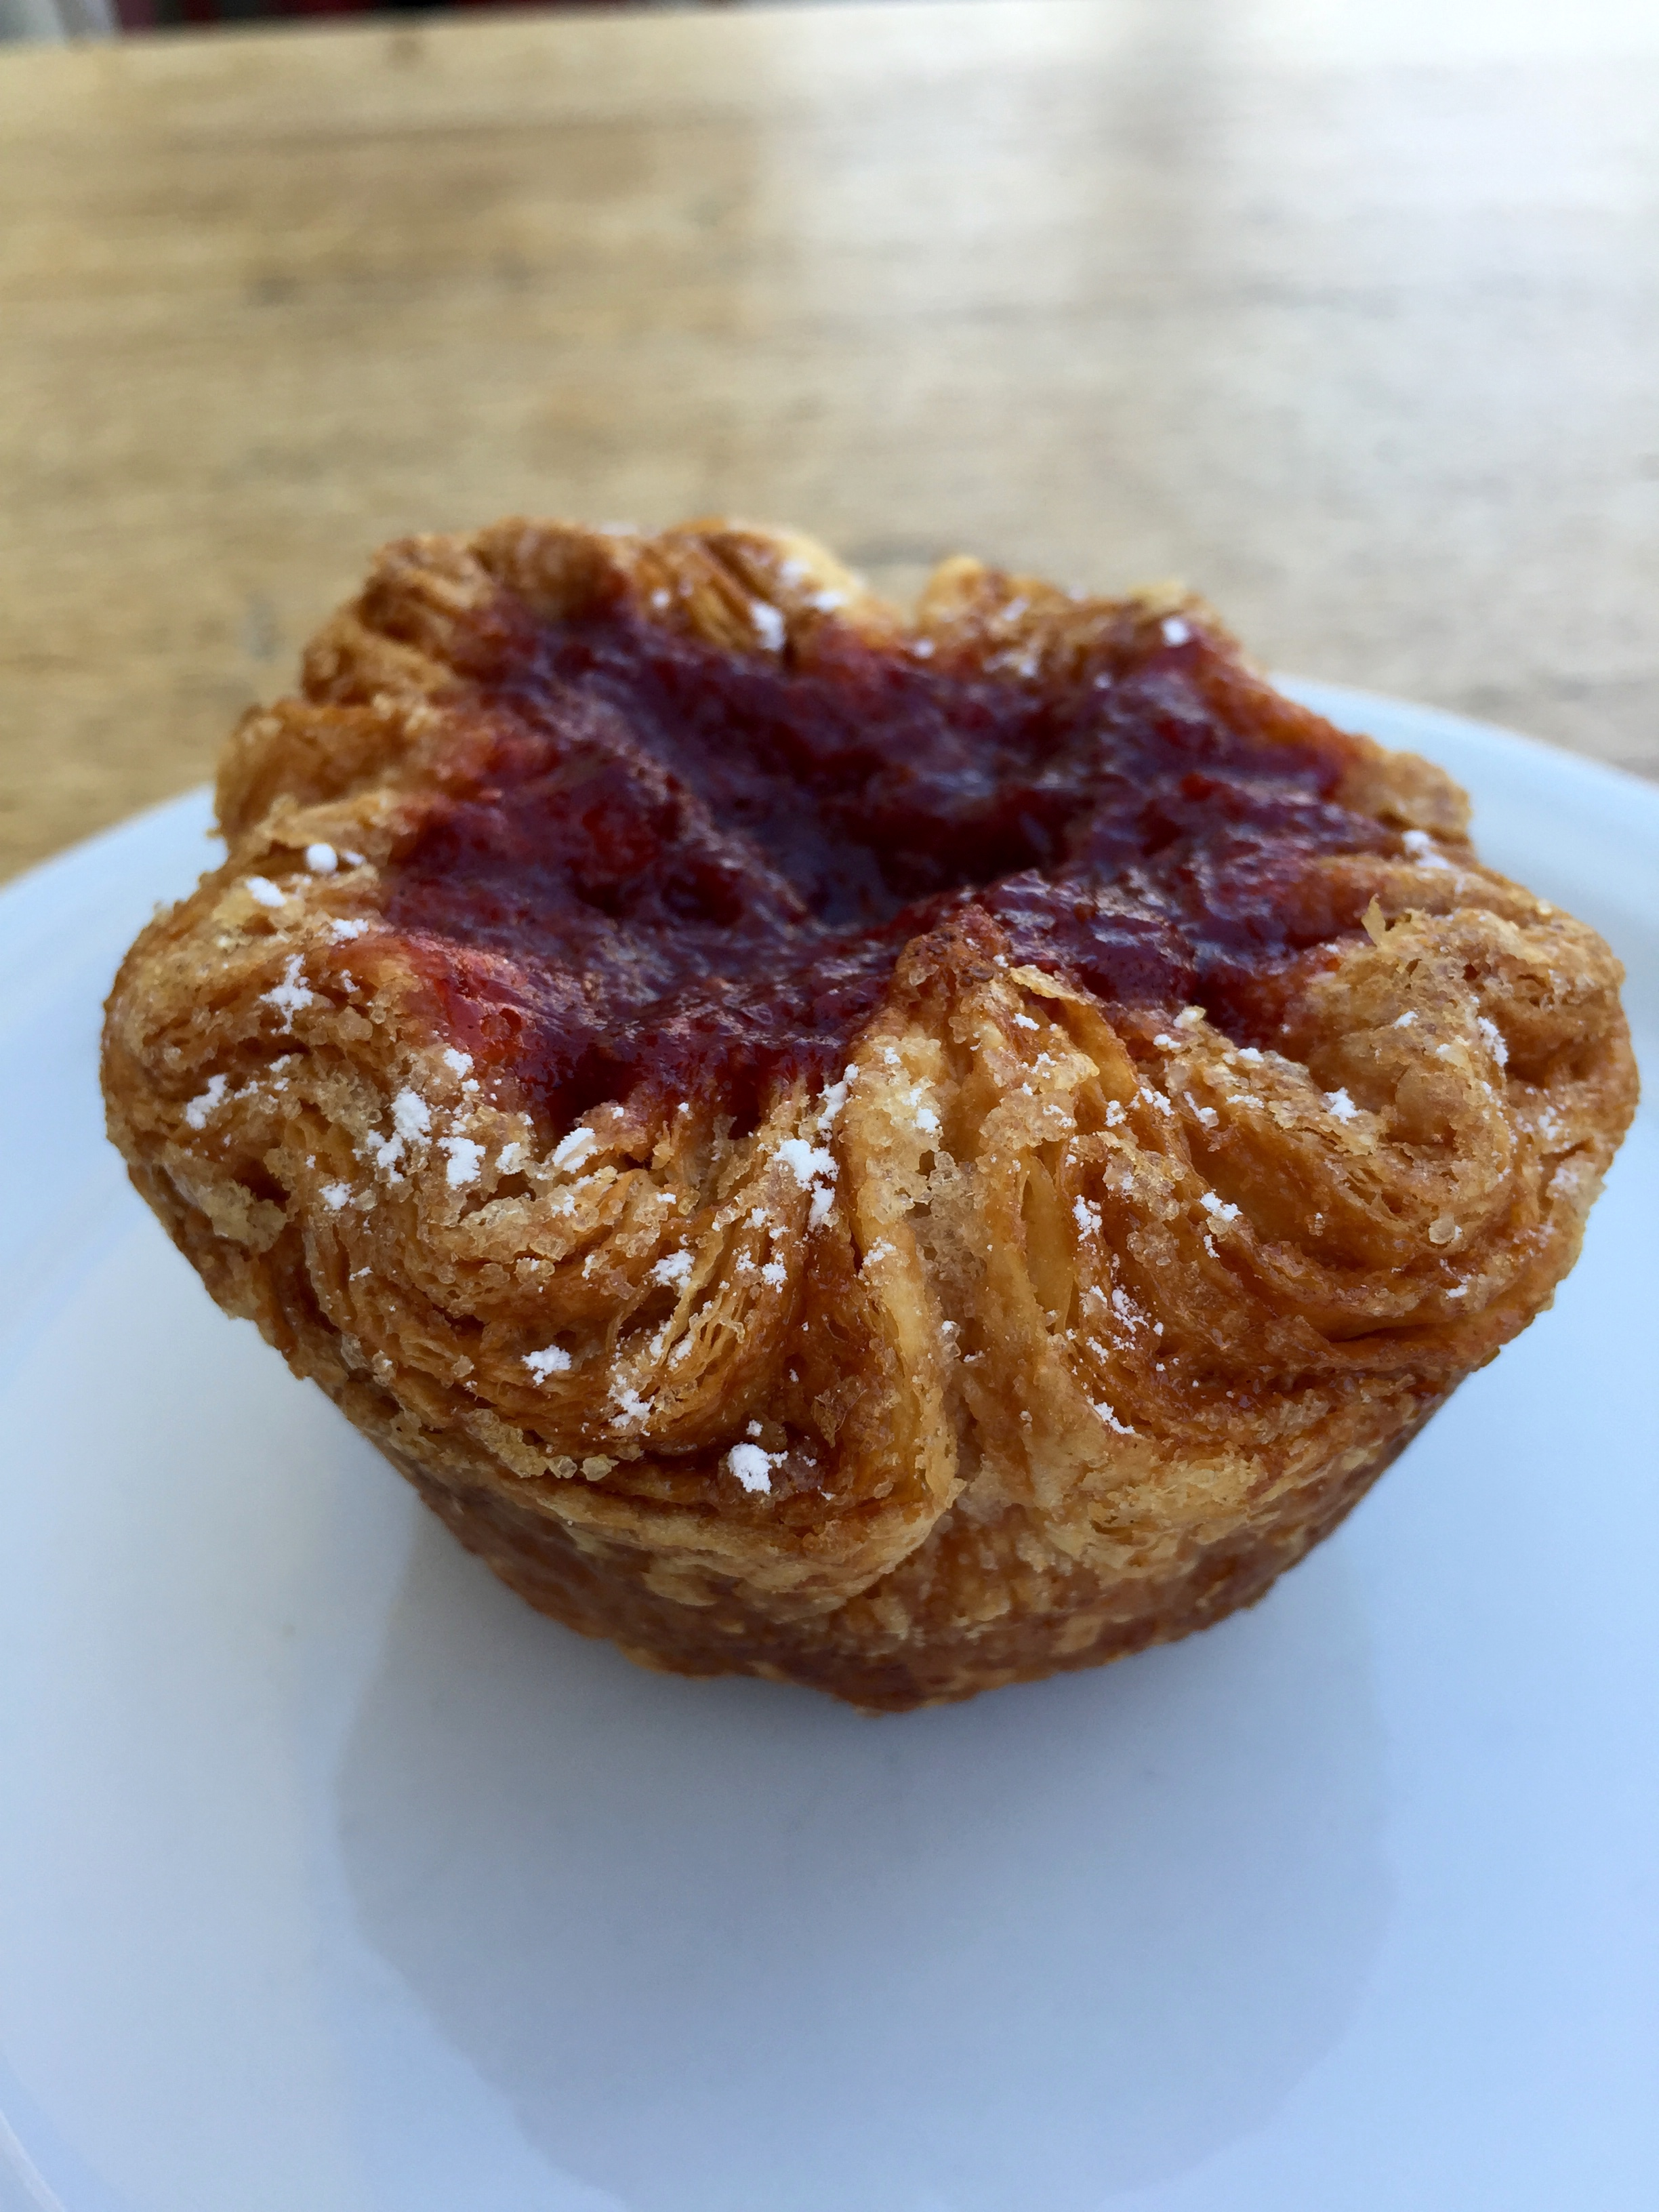 Strawberry  kouign-amann.